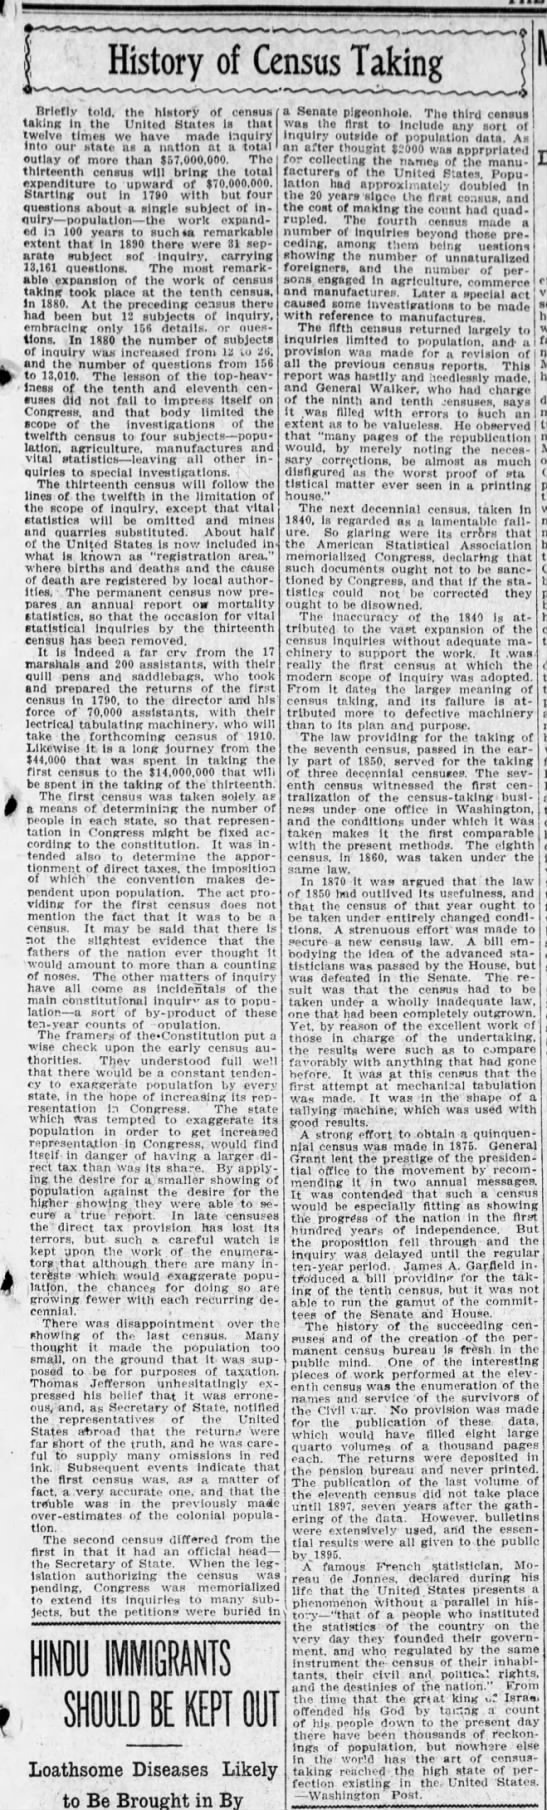 History of Census Taking - 1910 -